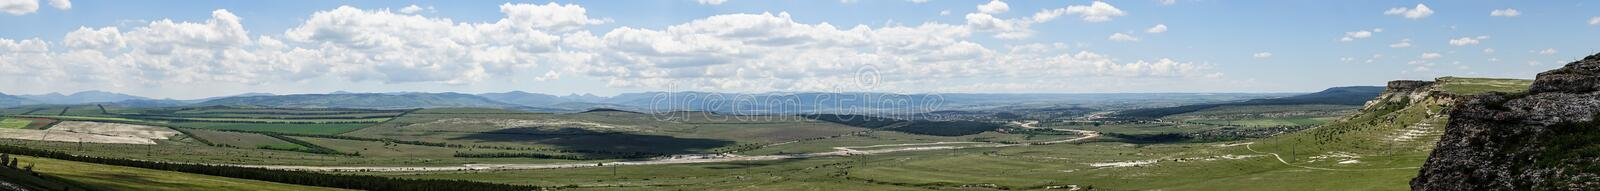 Panorama of natural landscape with mountains and valleys. Panorama of the natural landscape with mountains and valleys in the Crimea stock photo